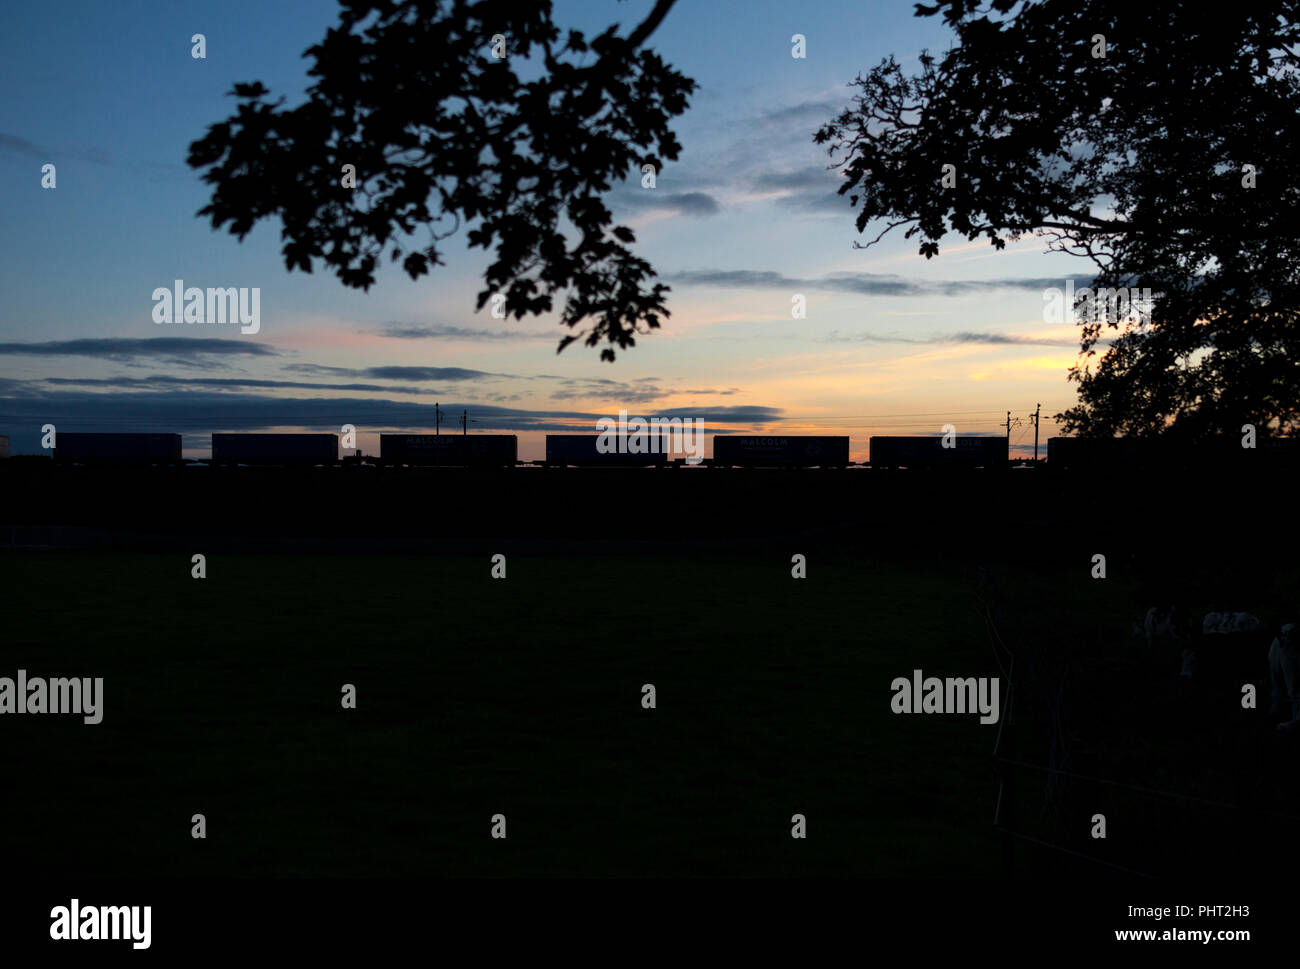 Containers on a DB Cargo intermodal container train making a silhouette at sunset on the west coast main line. - Stock Image